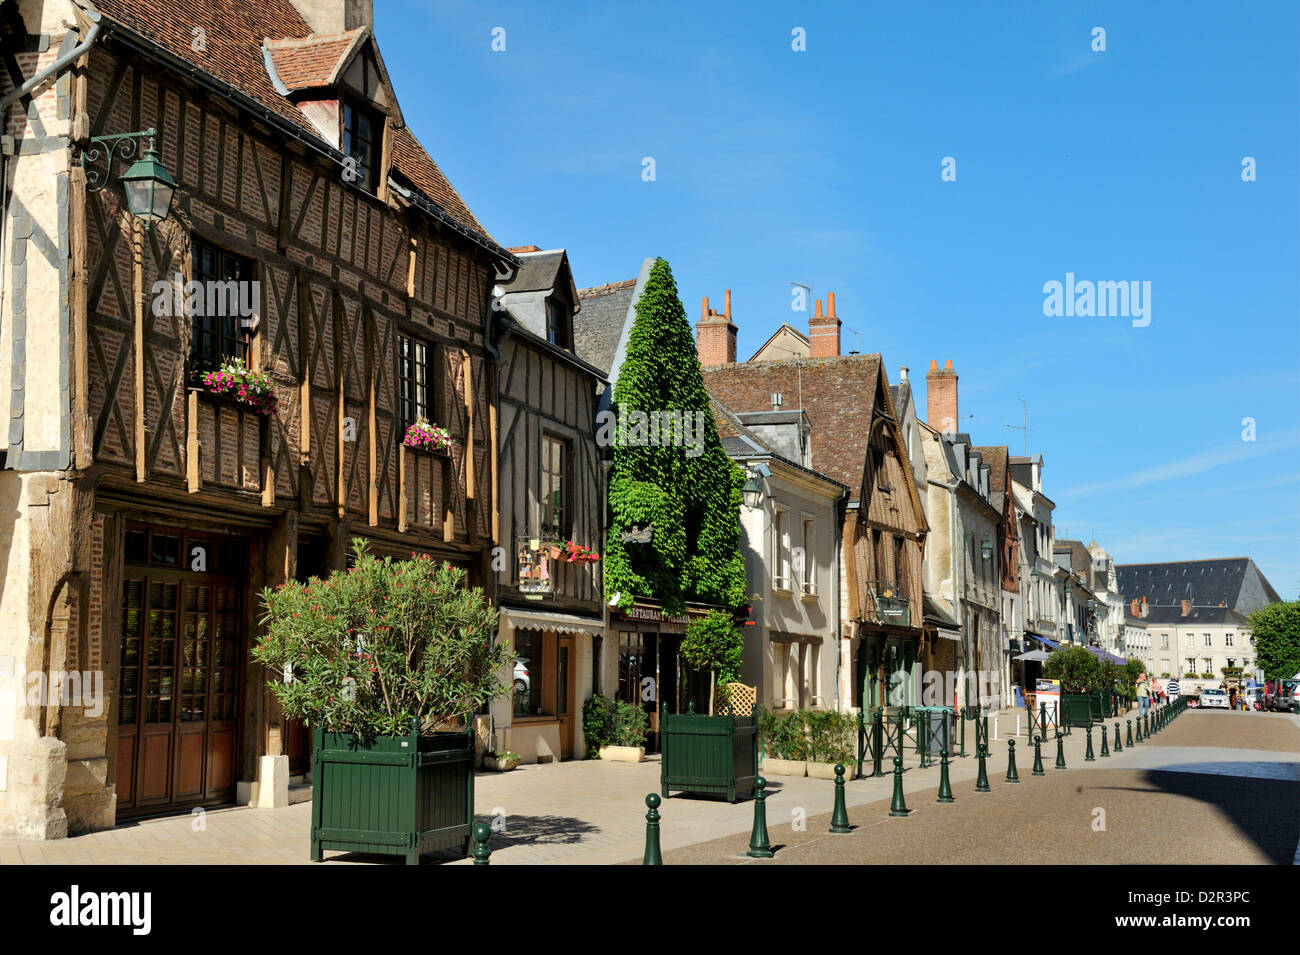 Medieval half-timbered buildings, Place Michel Debre, Amboise, Indre-et-Loire, Centre, France - Stock Image